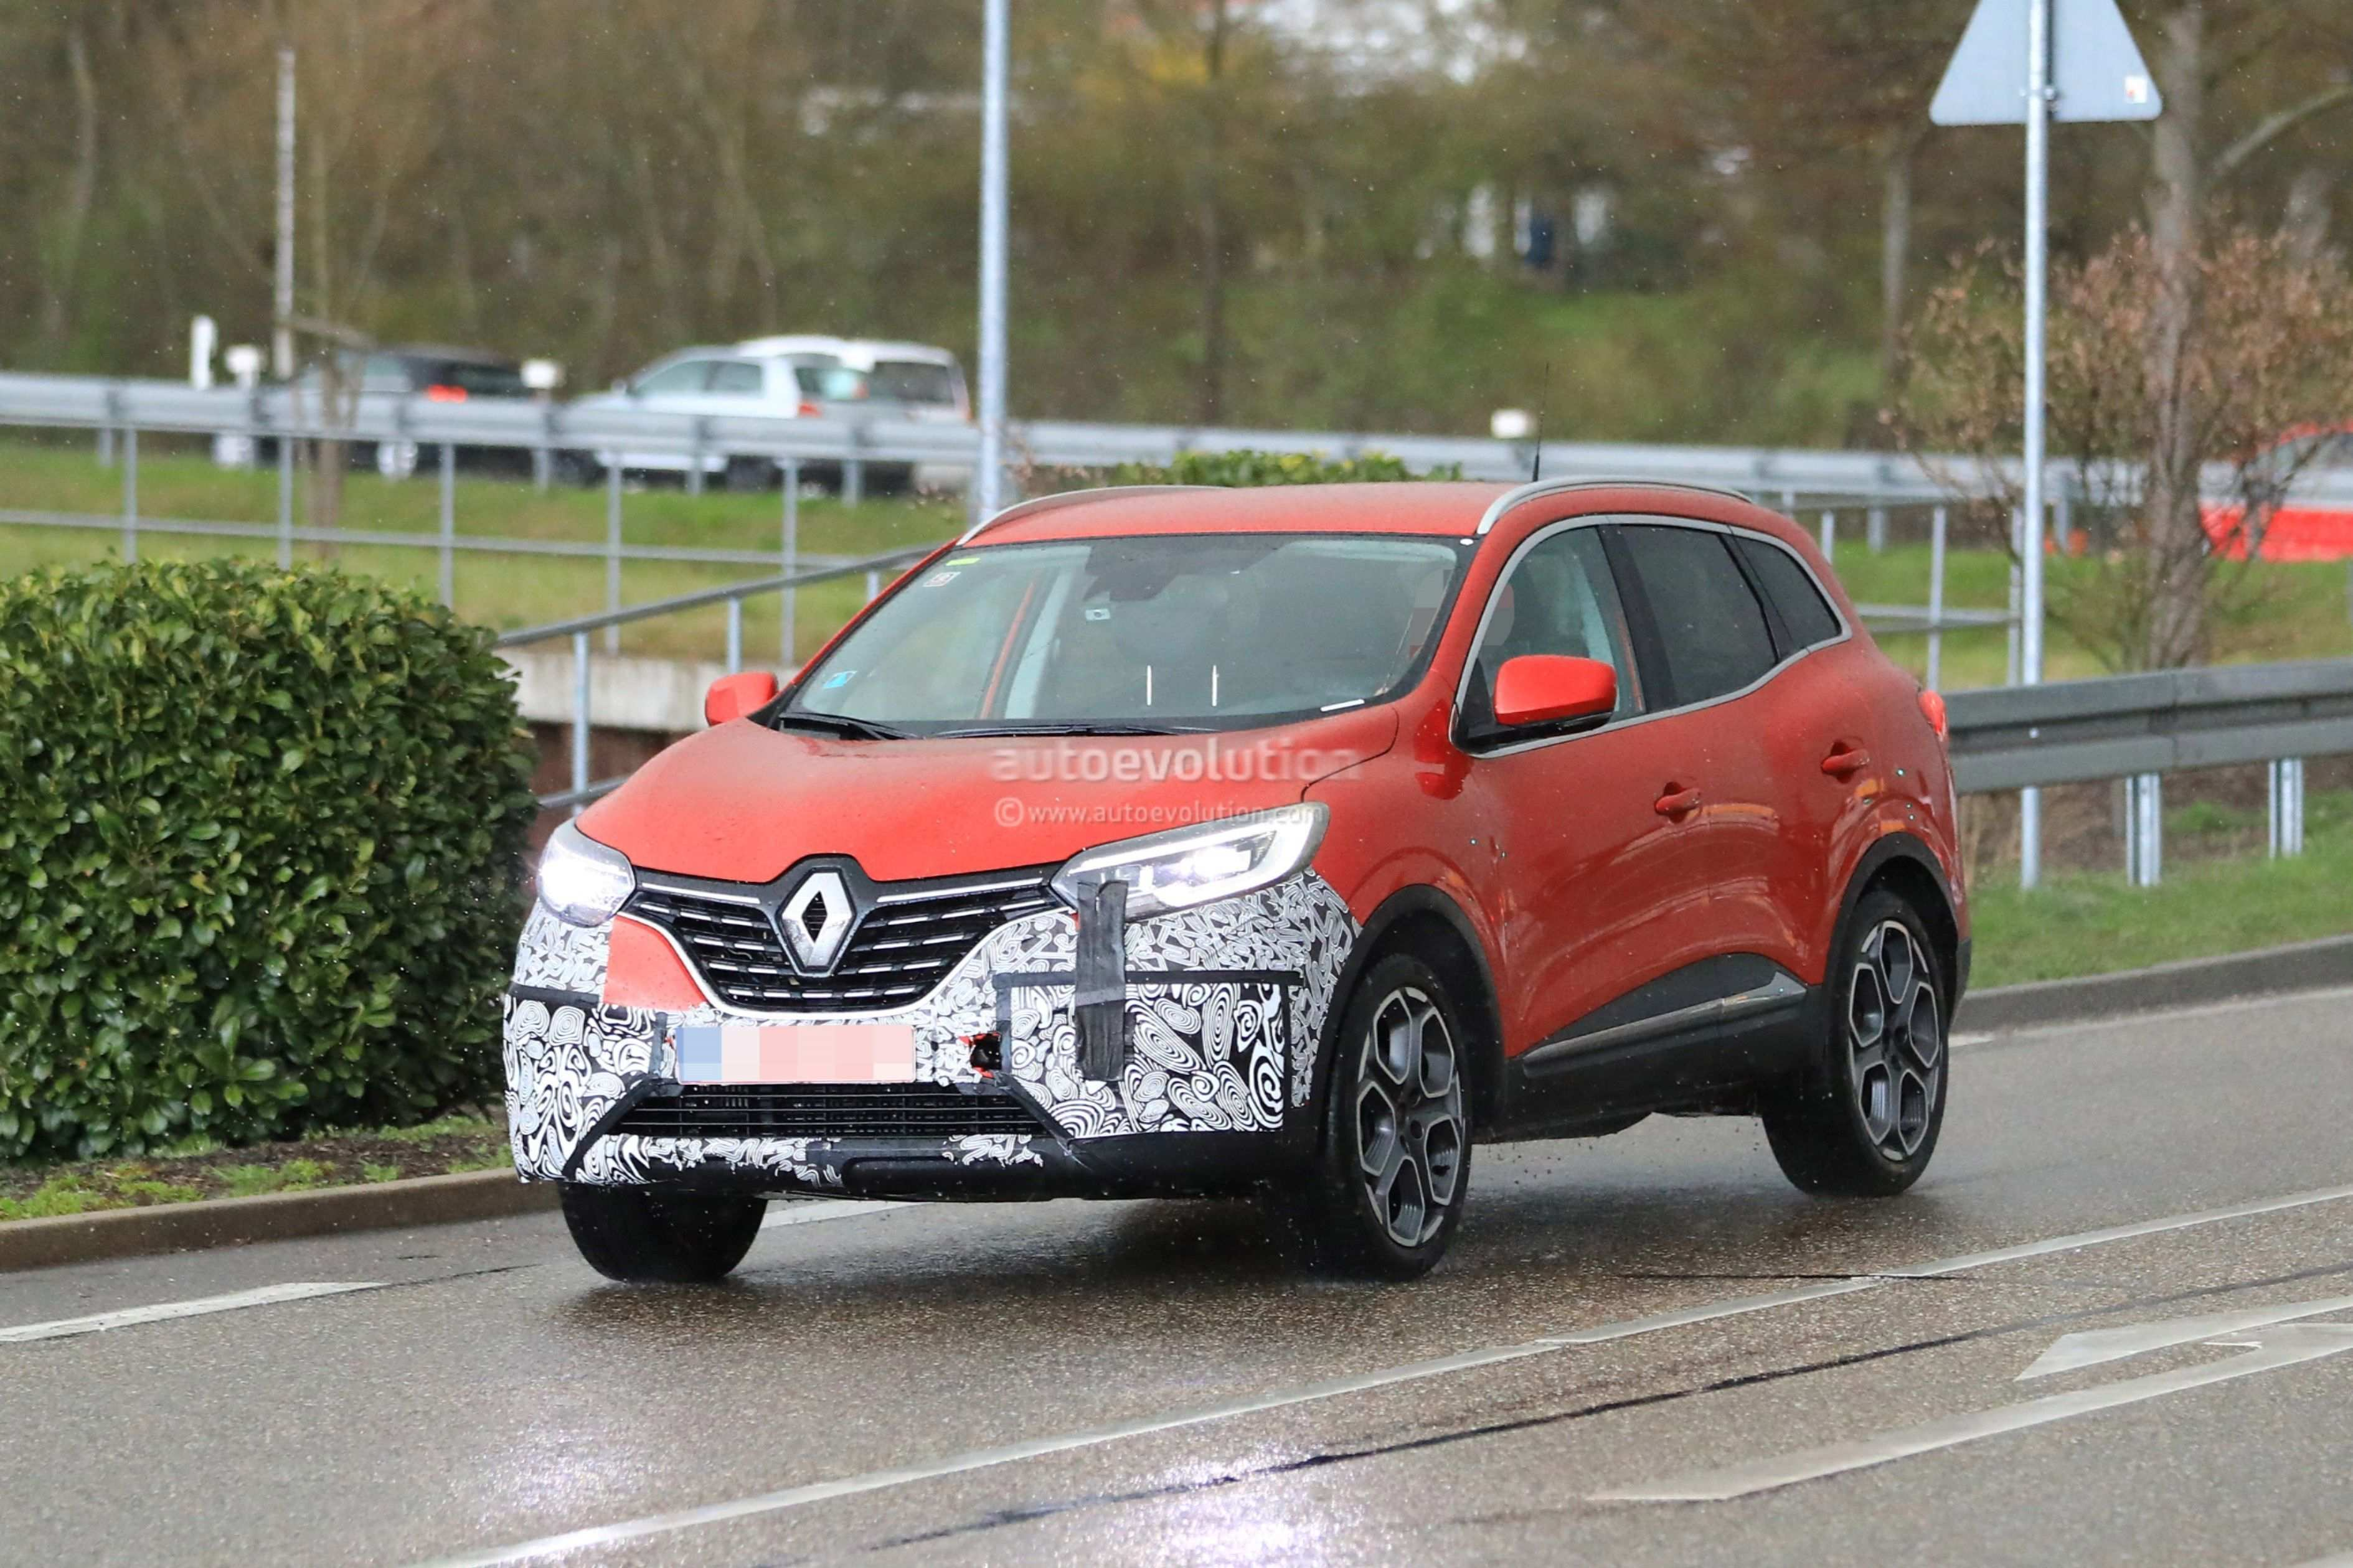 91 Gallery of New Nissan 2019 Colors Overview And Price Photos for New Nissan 2019 Colors Overview And Price